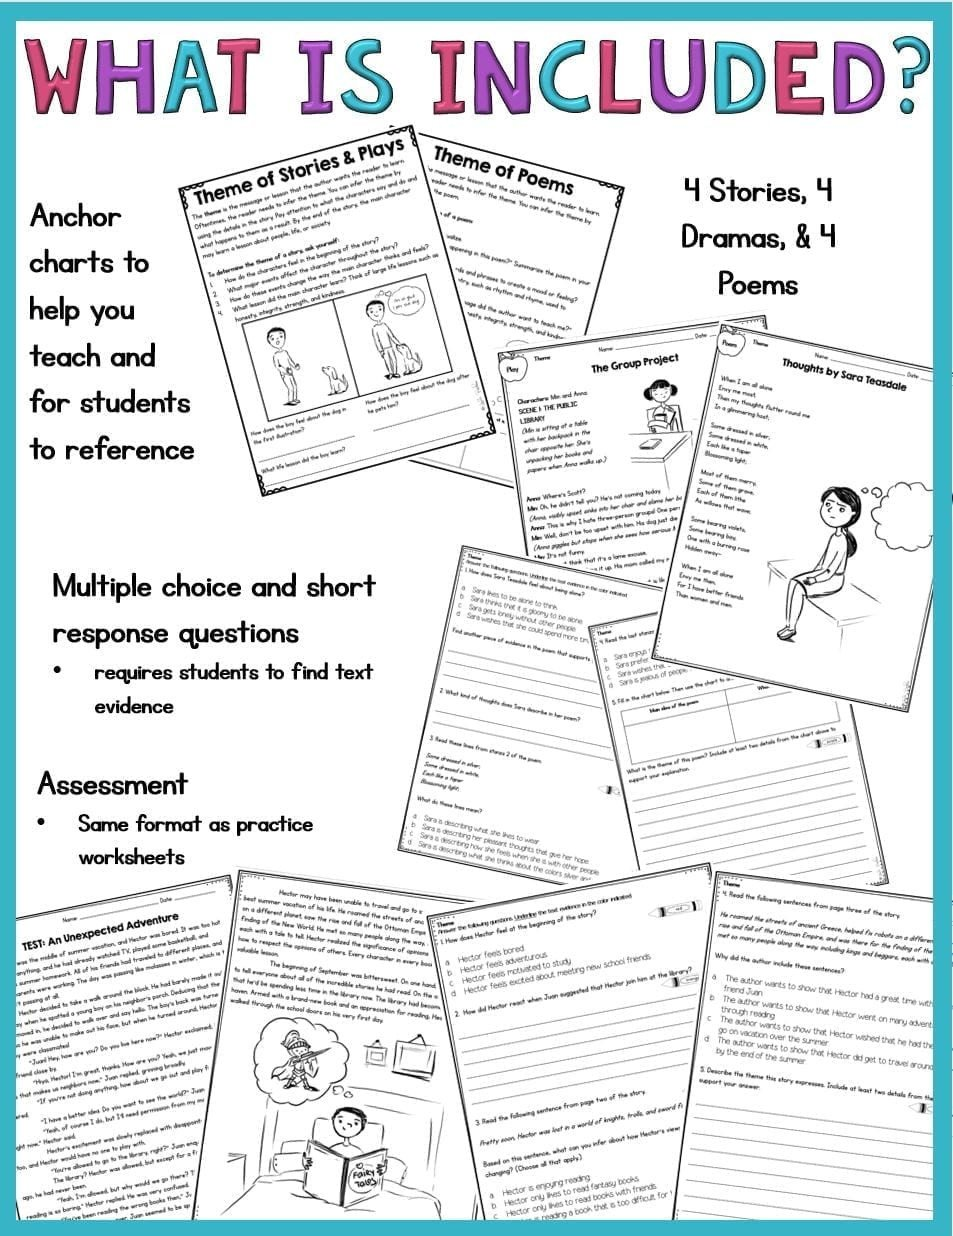 theme in stories plays and poems 4th grade rl 4 2 and 5th grade rl 5 2